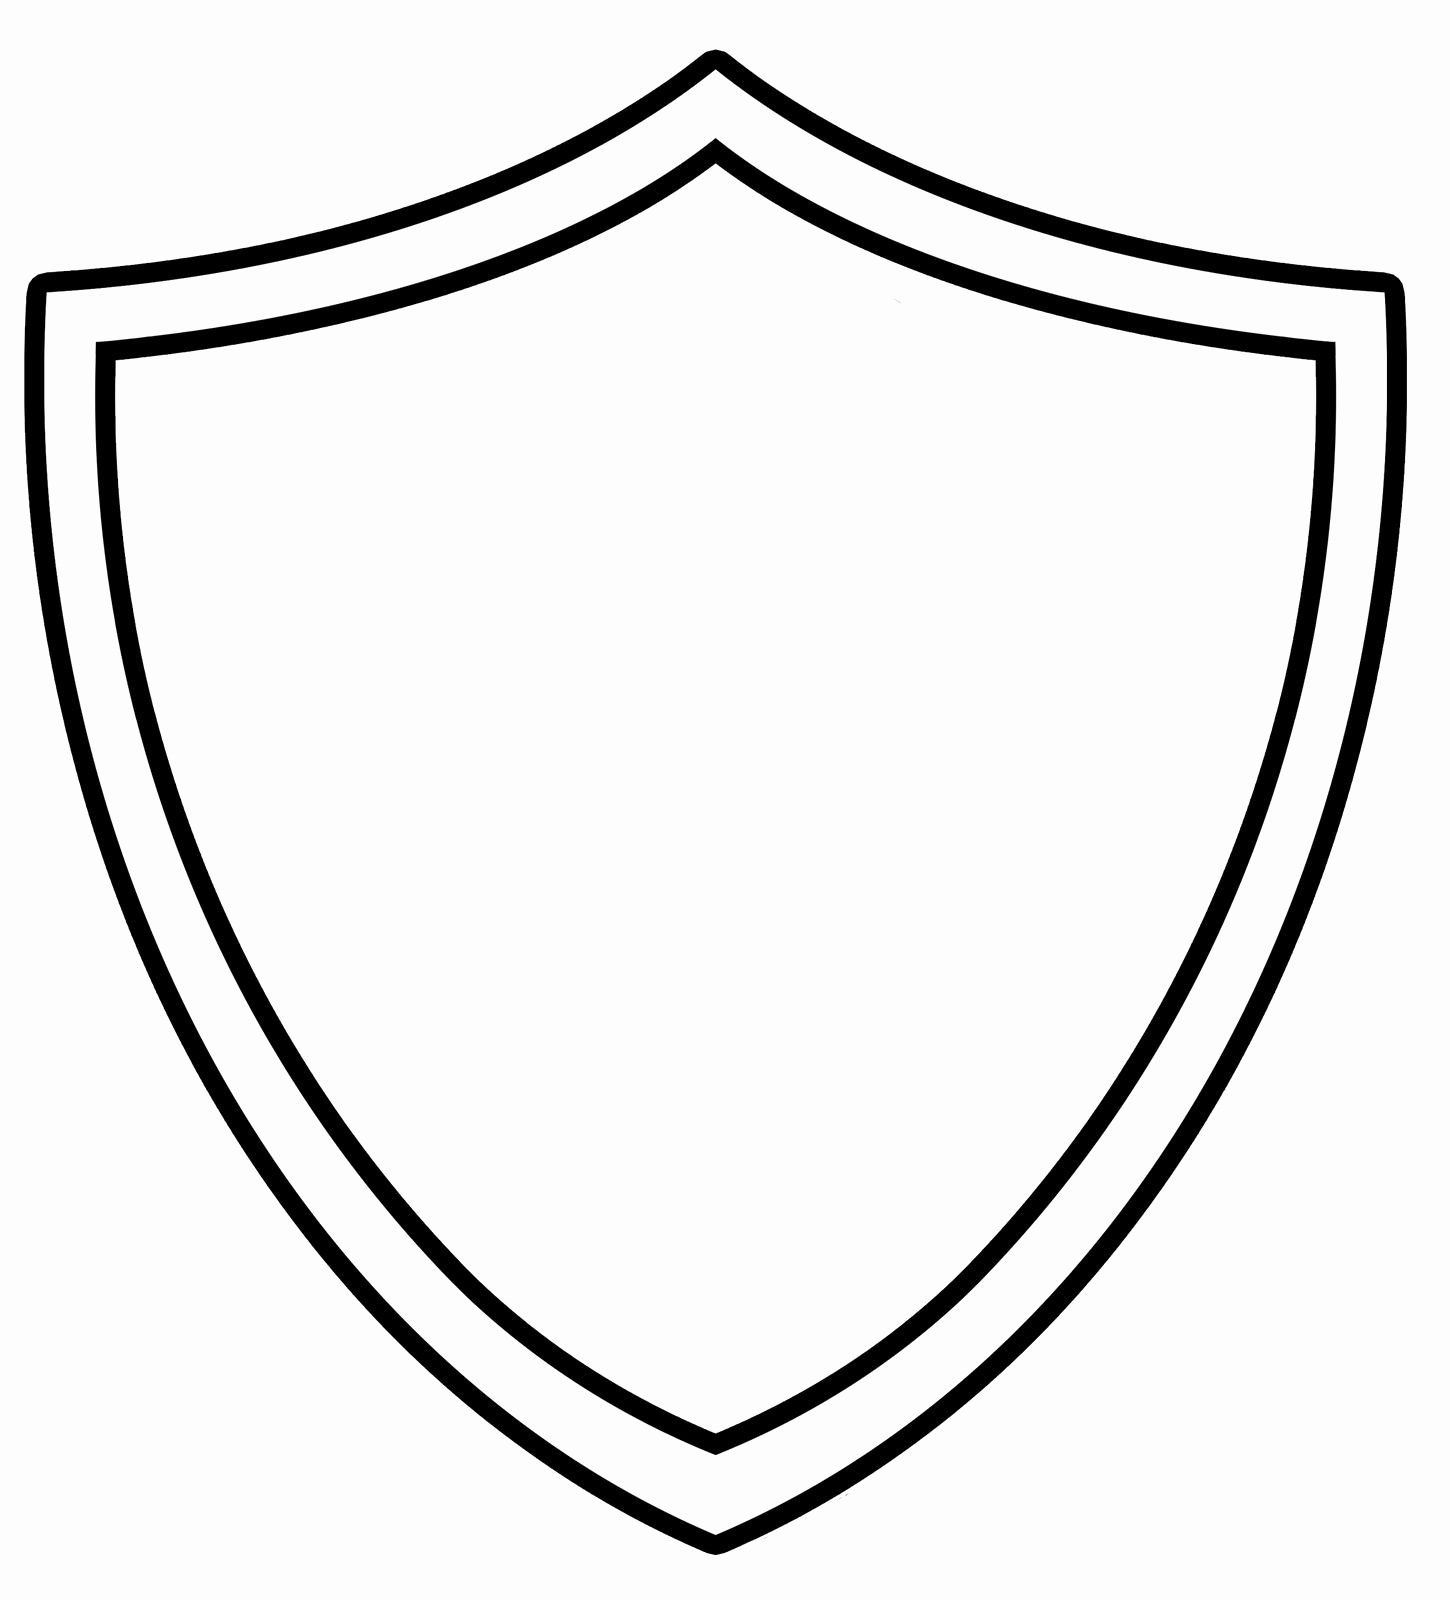 28 Ctr Shield Coloring Page In 2020 Shield Template Superhero